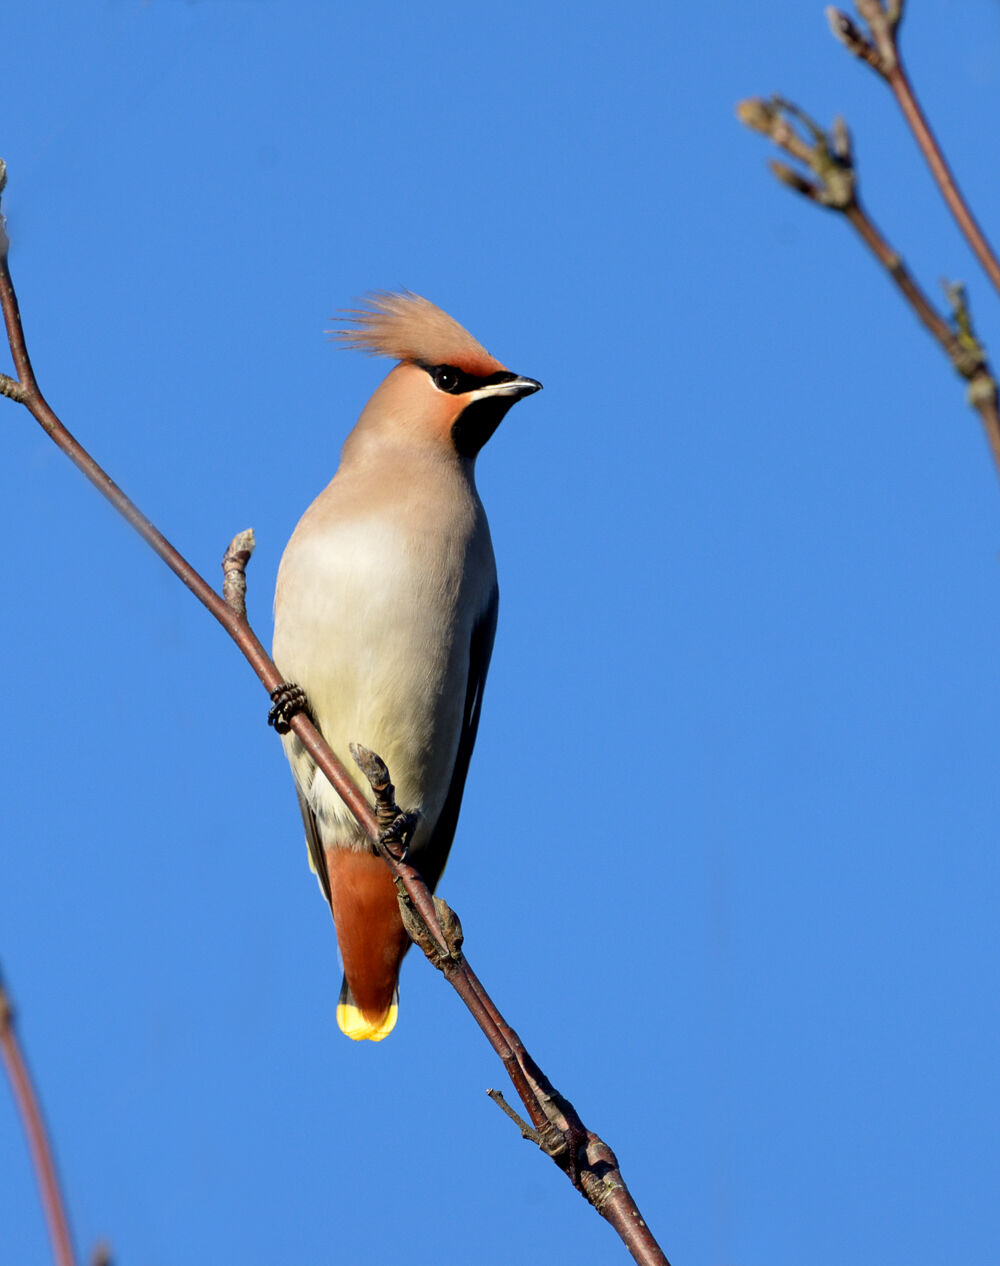 Waxwings on a fine day.